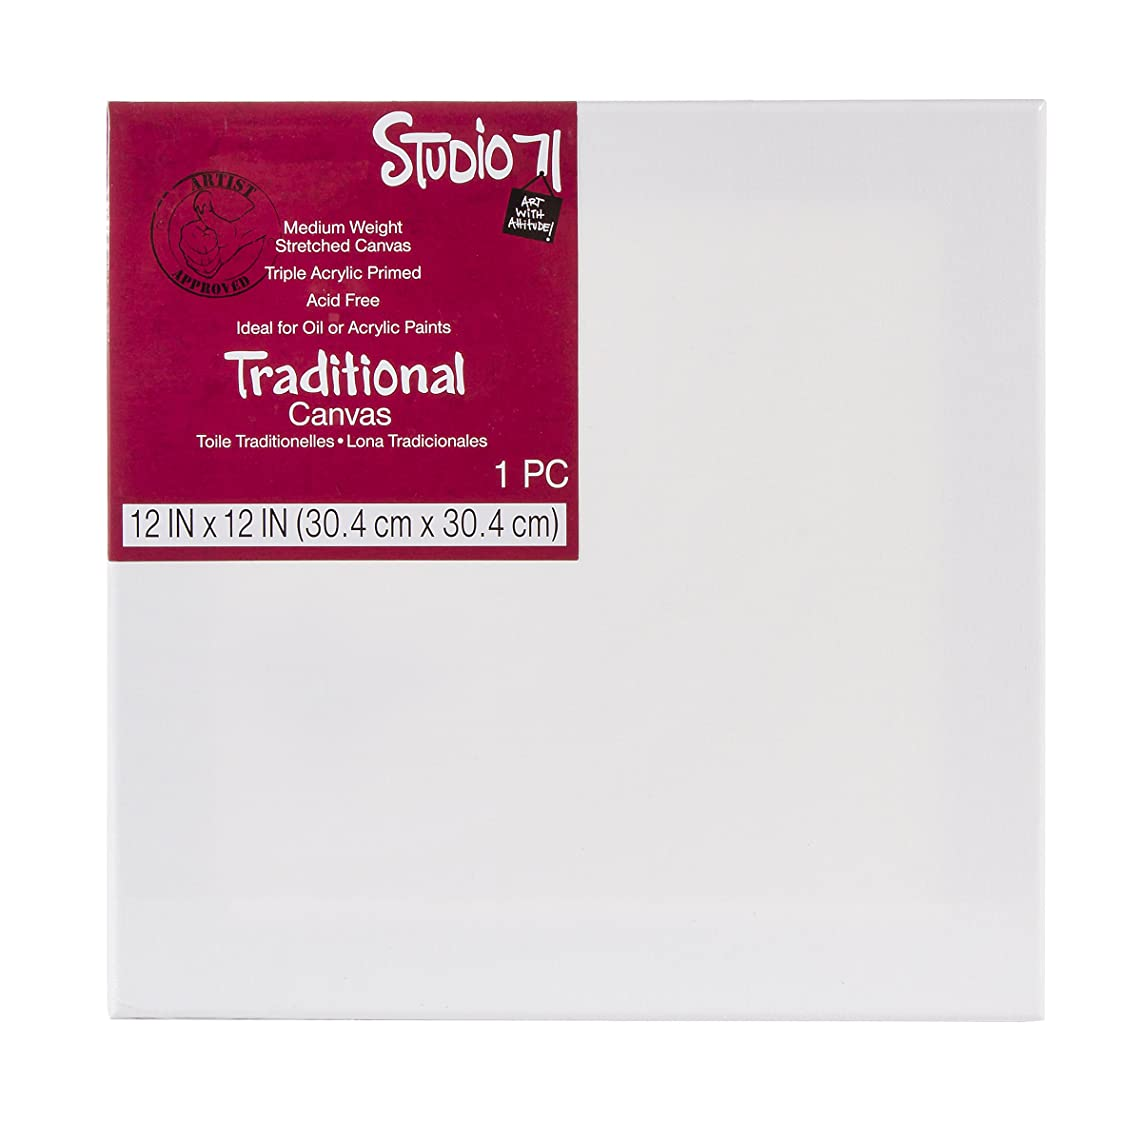 Darice Studio 71, 12 by 12 inch, Traditional Stretched Canvas, Medium Weight, Primed